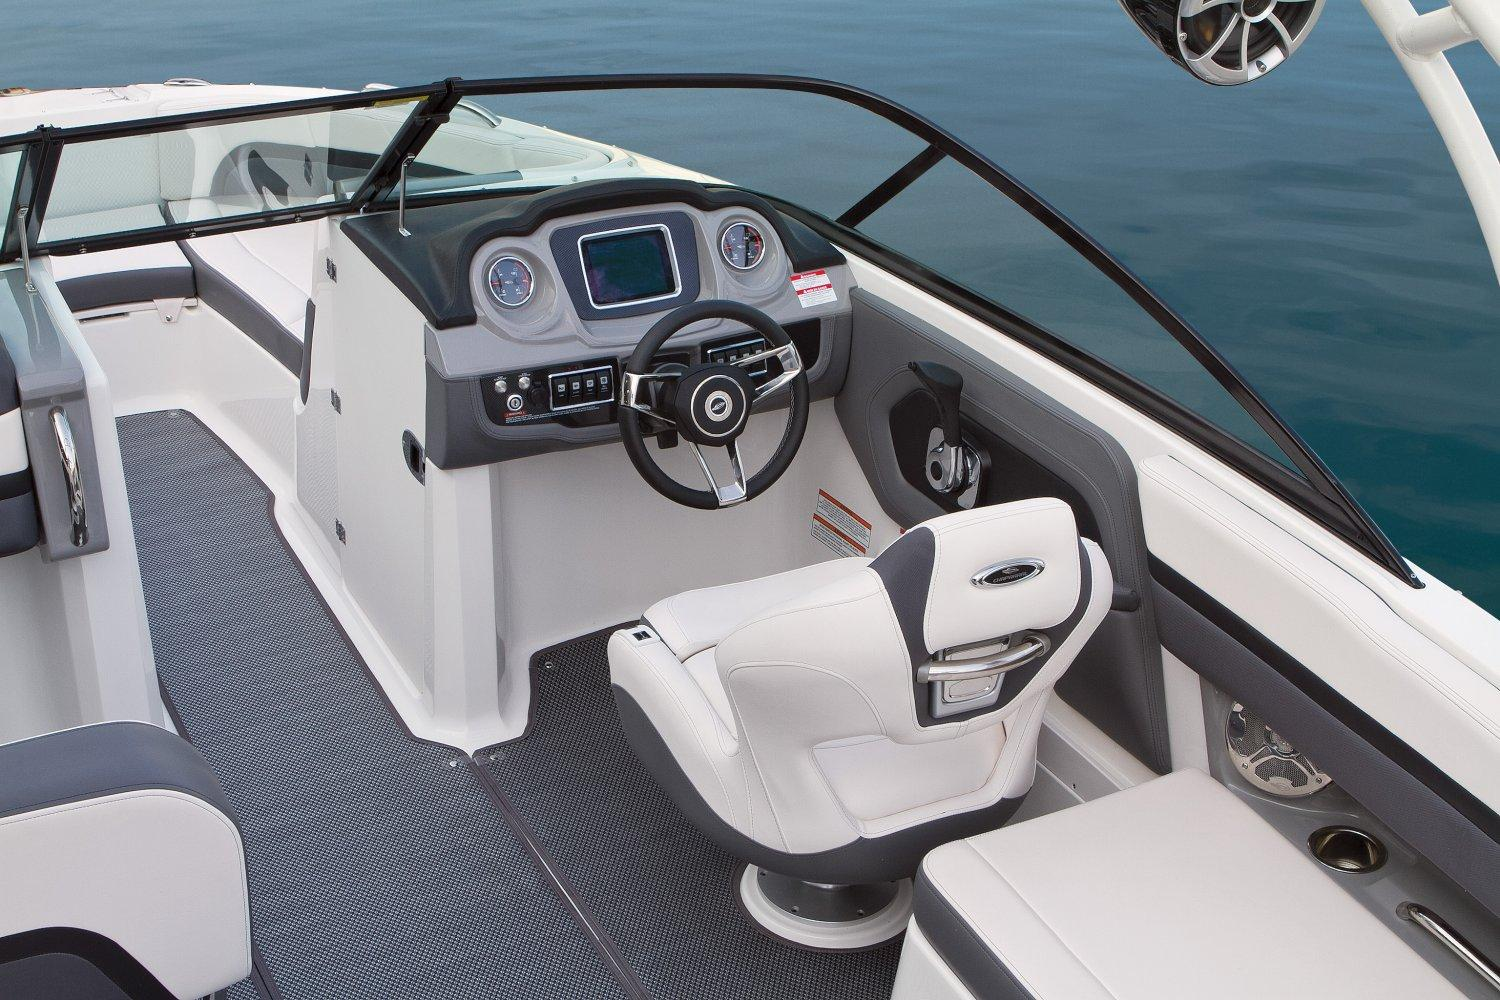 2016 Chaparral 223 Vortex VRX in Round Lake, Illinois